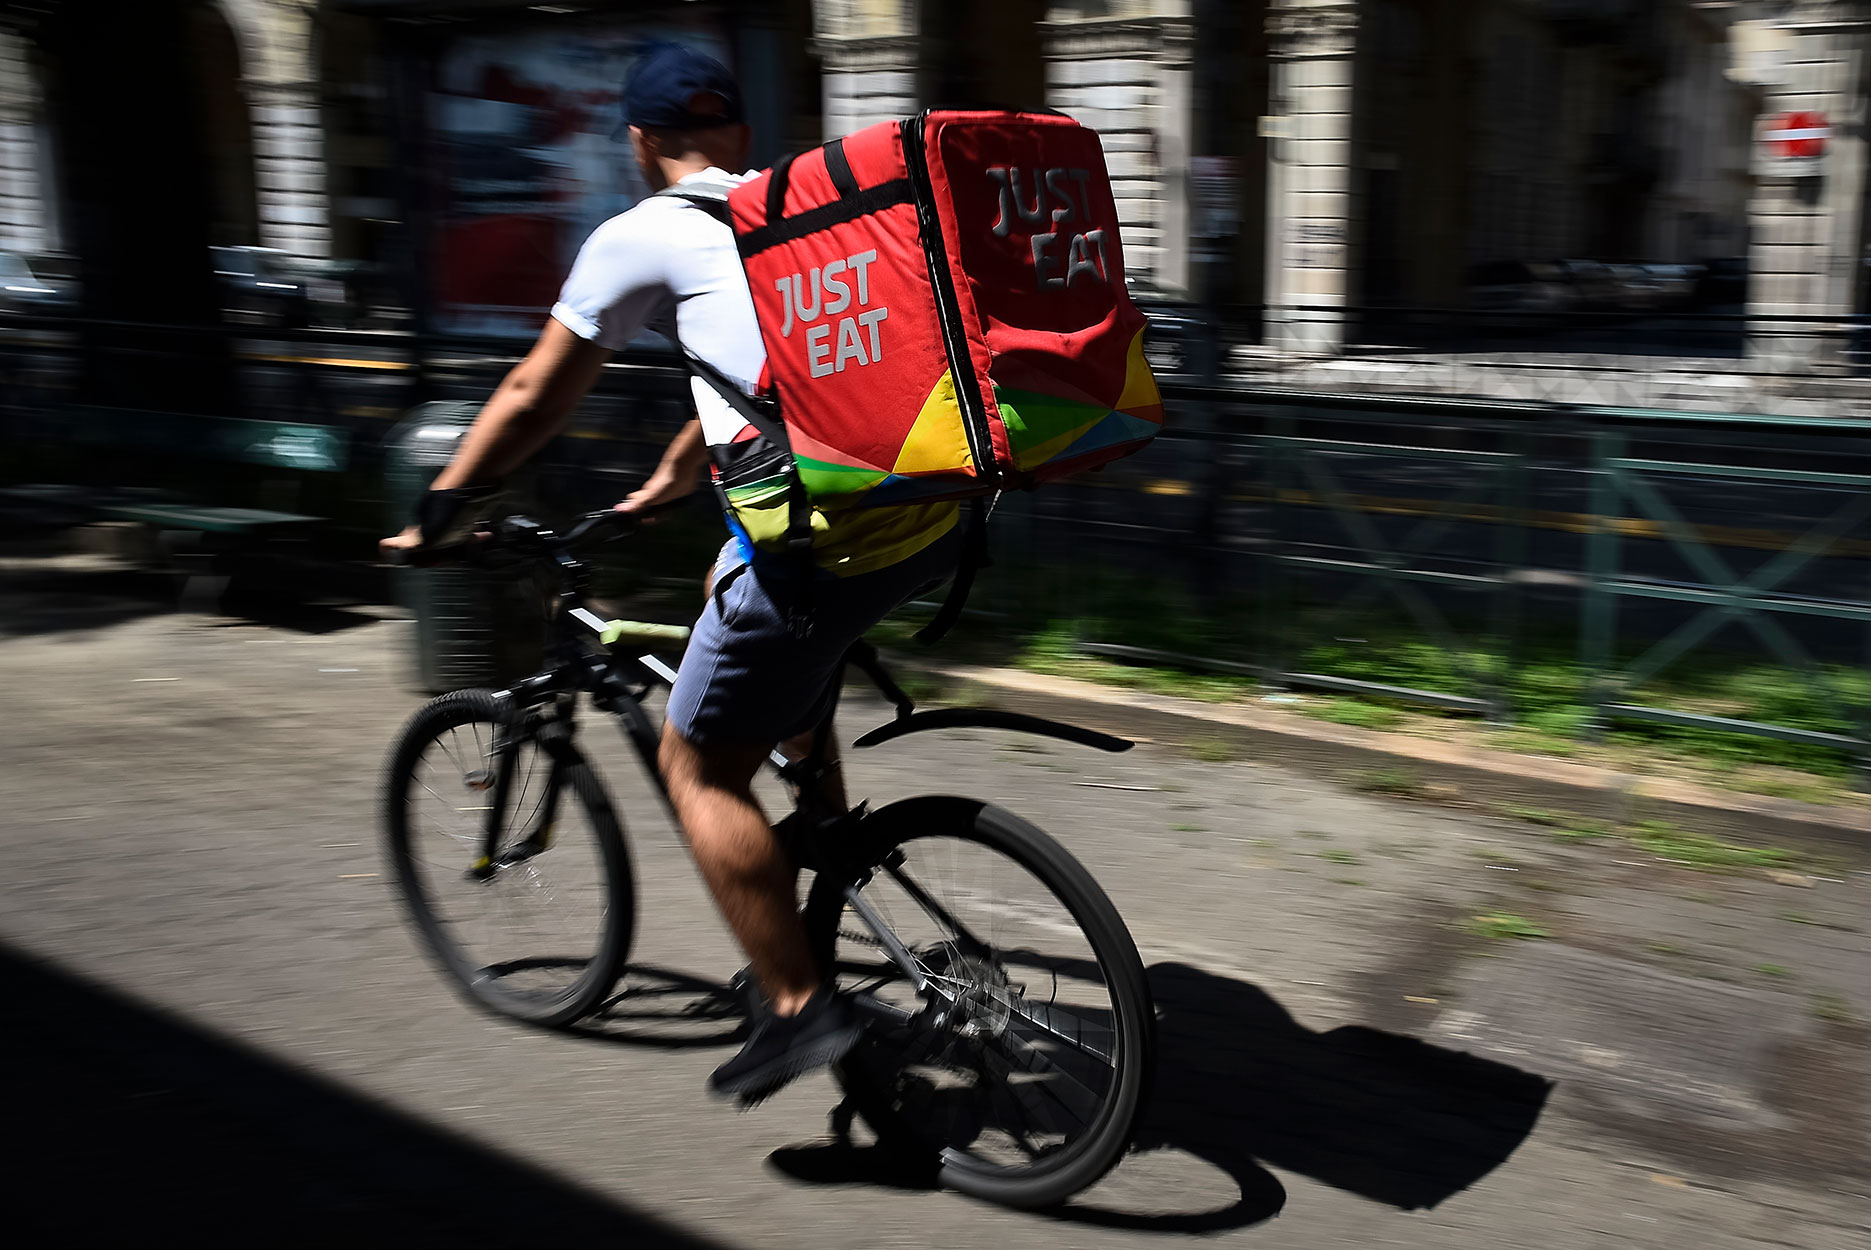 A Just Eat courier rides during his work. Just Eat is a